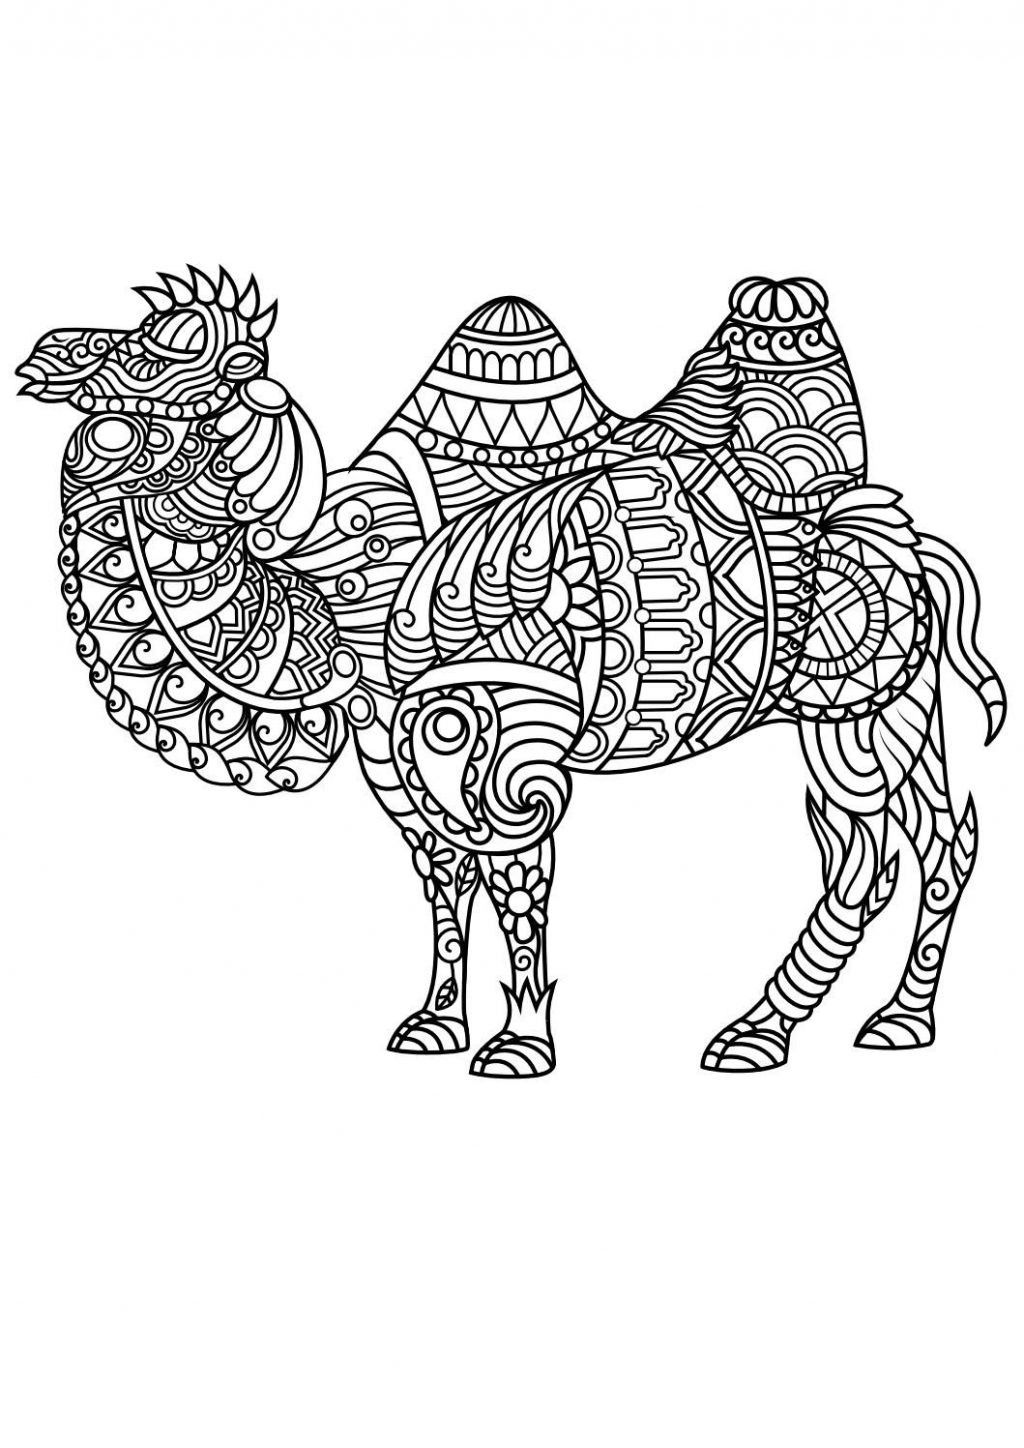 25 Inspiration Image Of Animal Mandala Coloring Pages Entitlementtrap Com Mandala Coloring Pages Animal Coloring Books Animal Coloring Pages